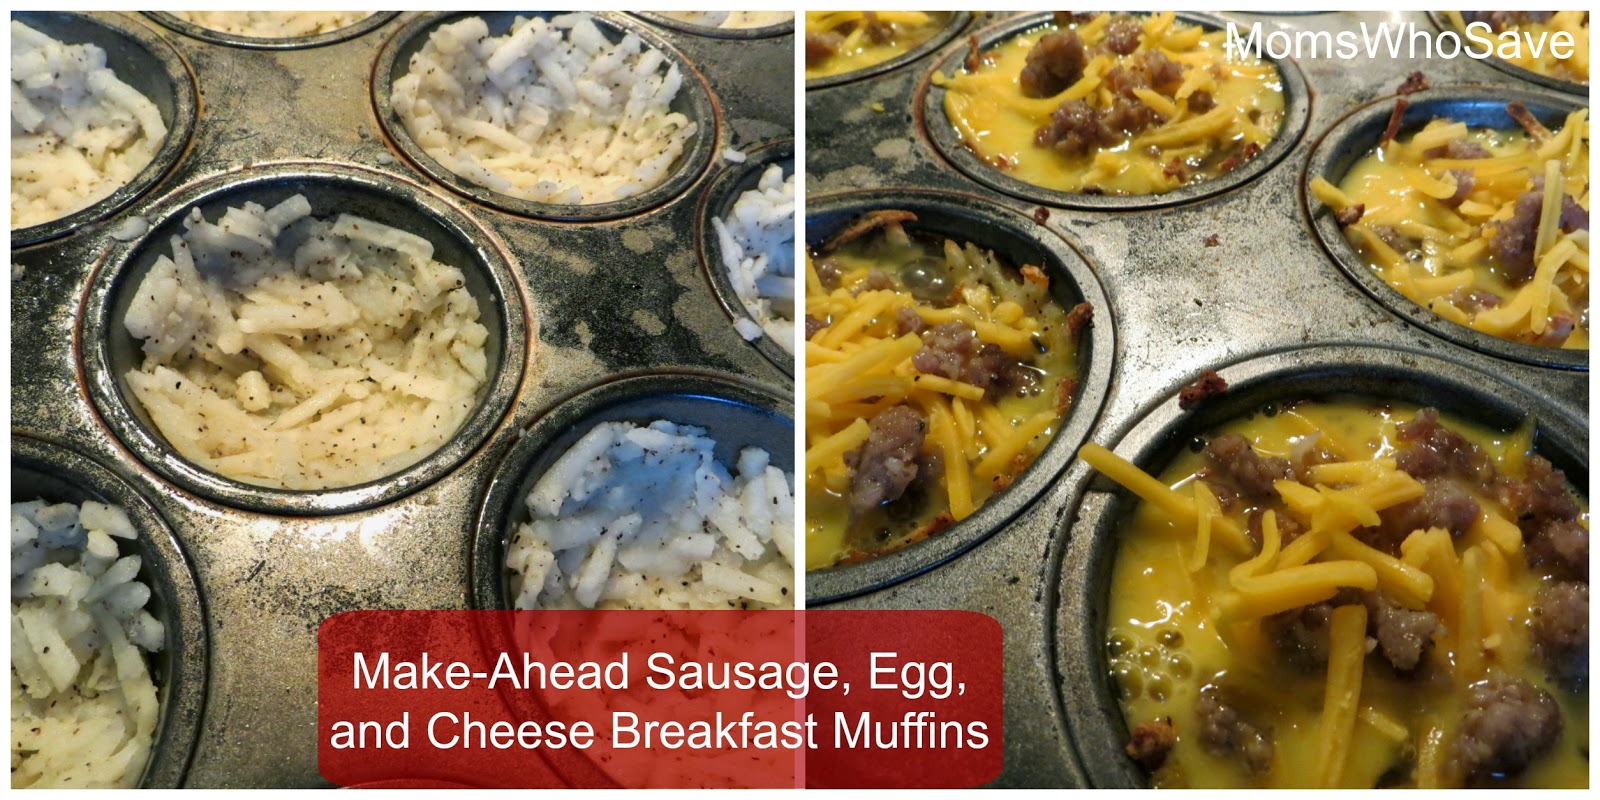 Make-Ahead Sausage, Egg, and Cheese Breakfast Muffins